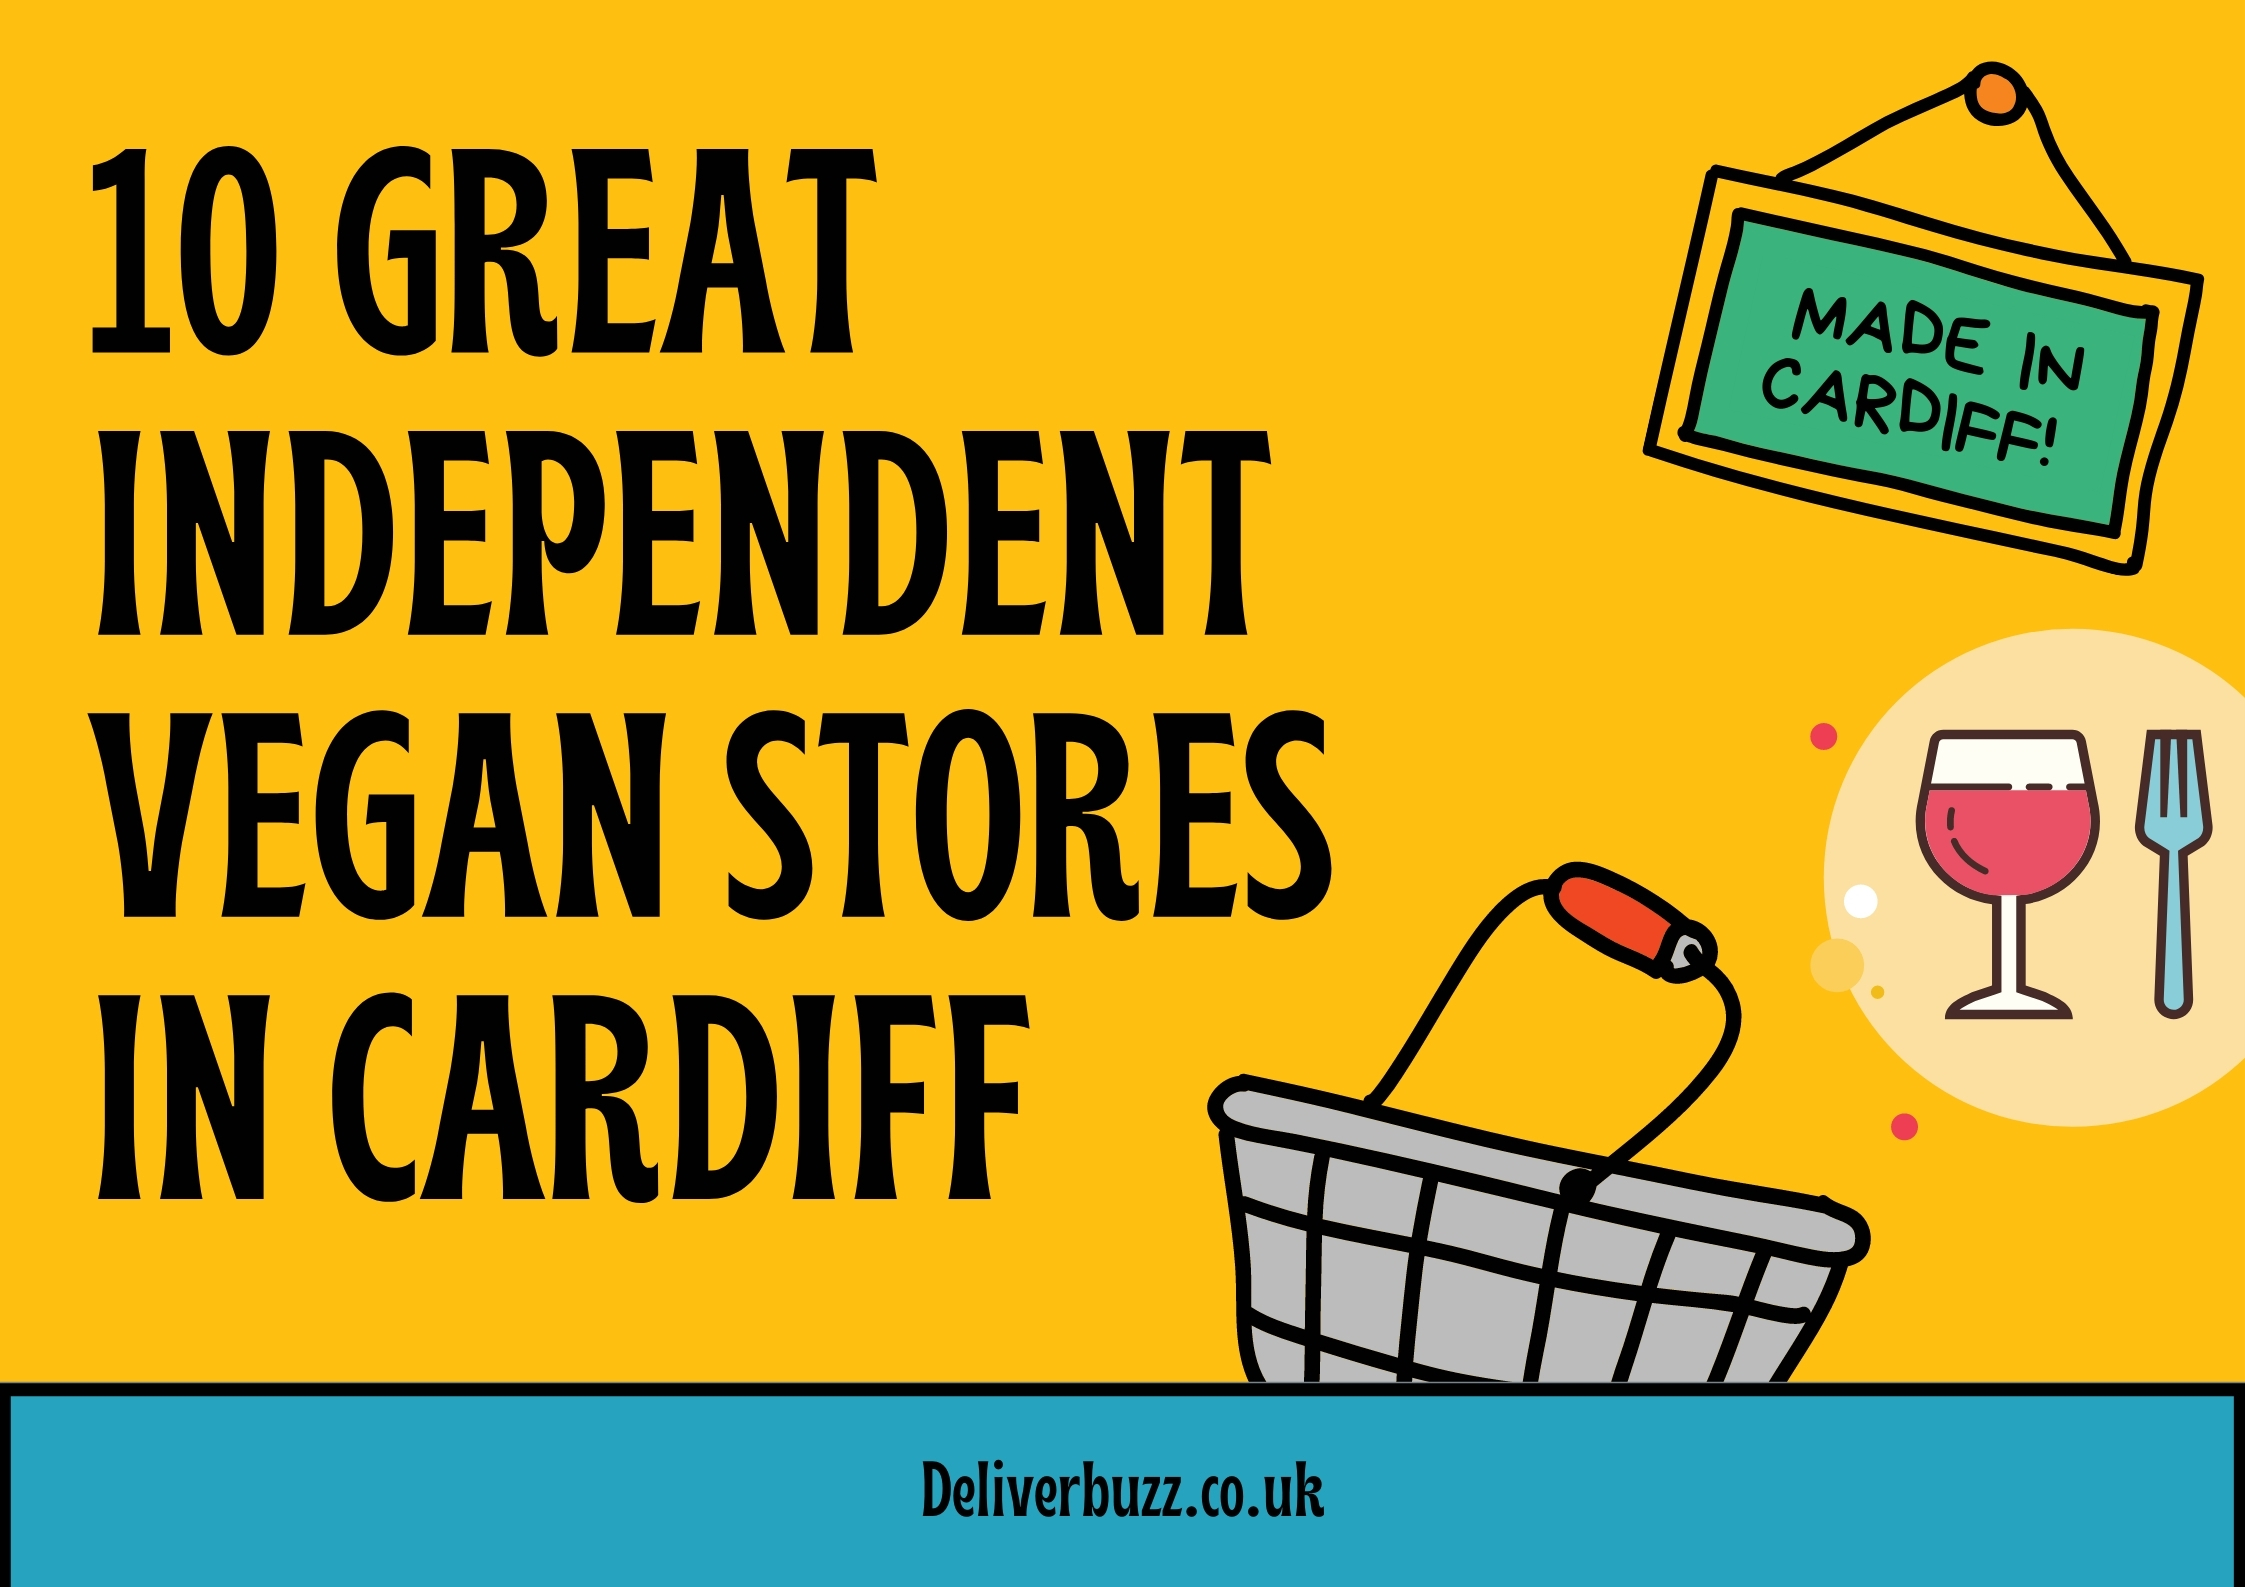 10 Great Independent Vegan Stores in Cardiff